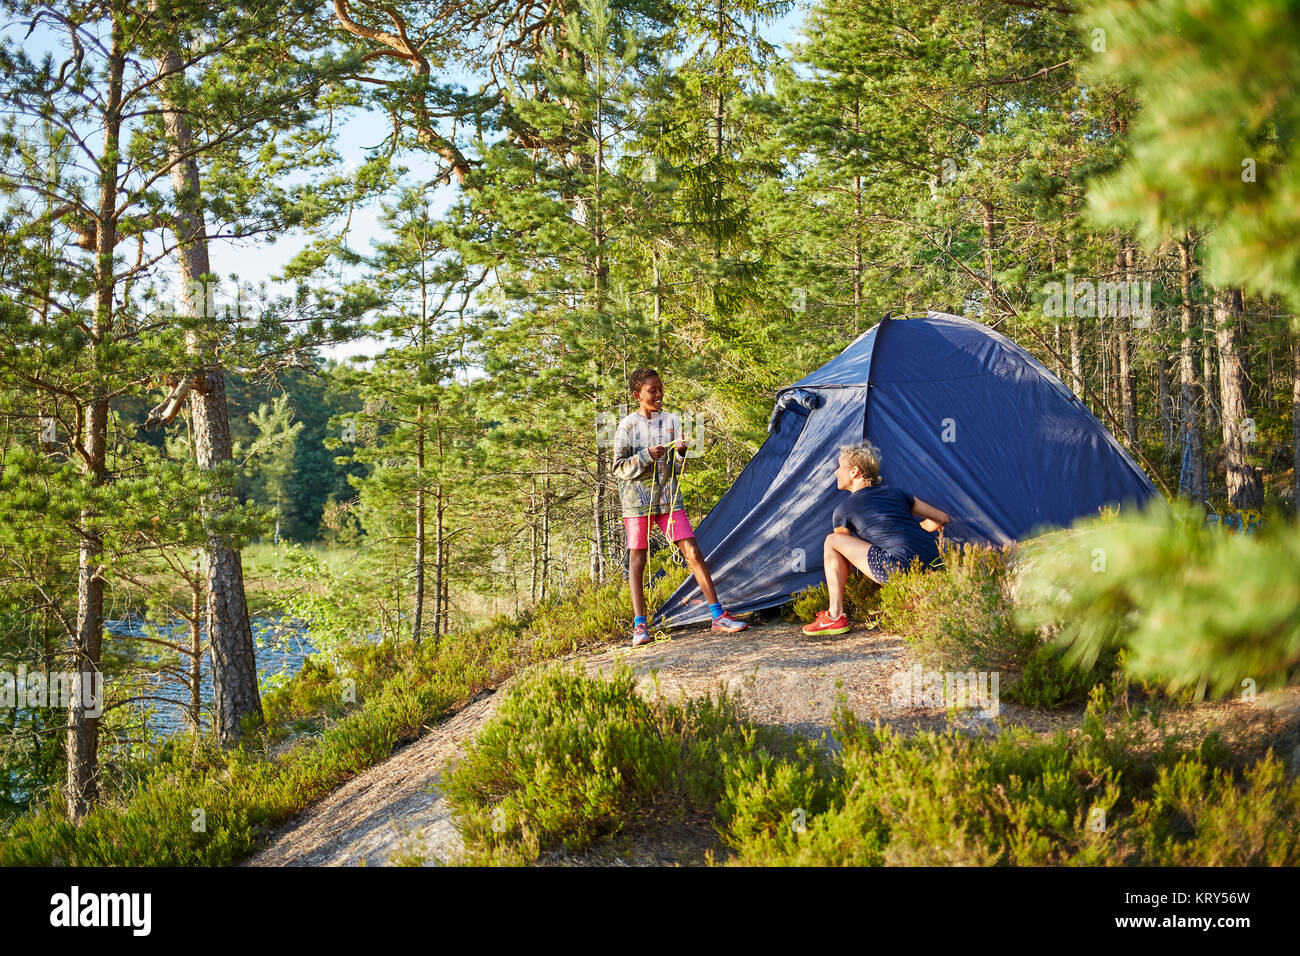 Boy and woman camping - Stock Image